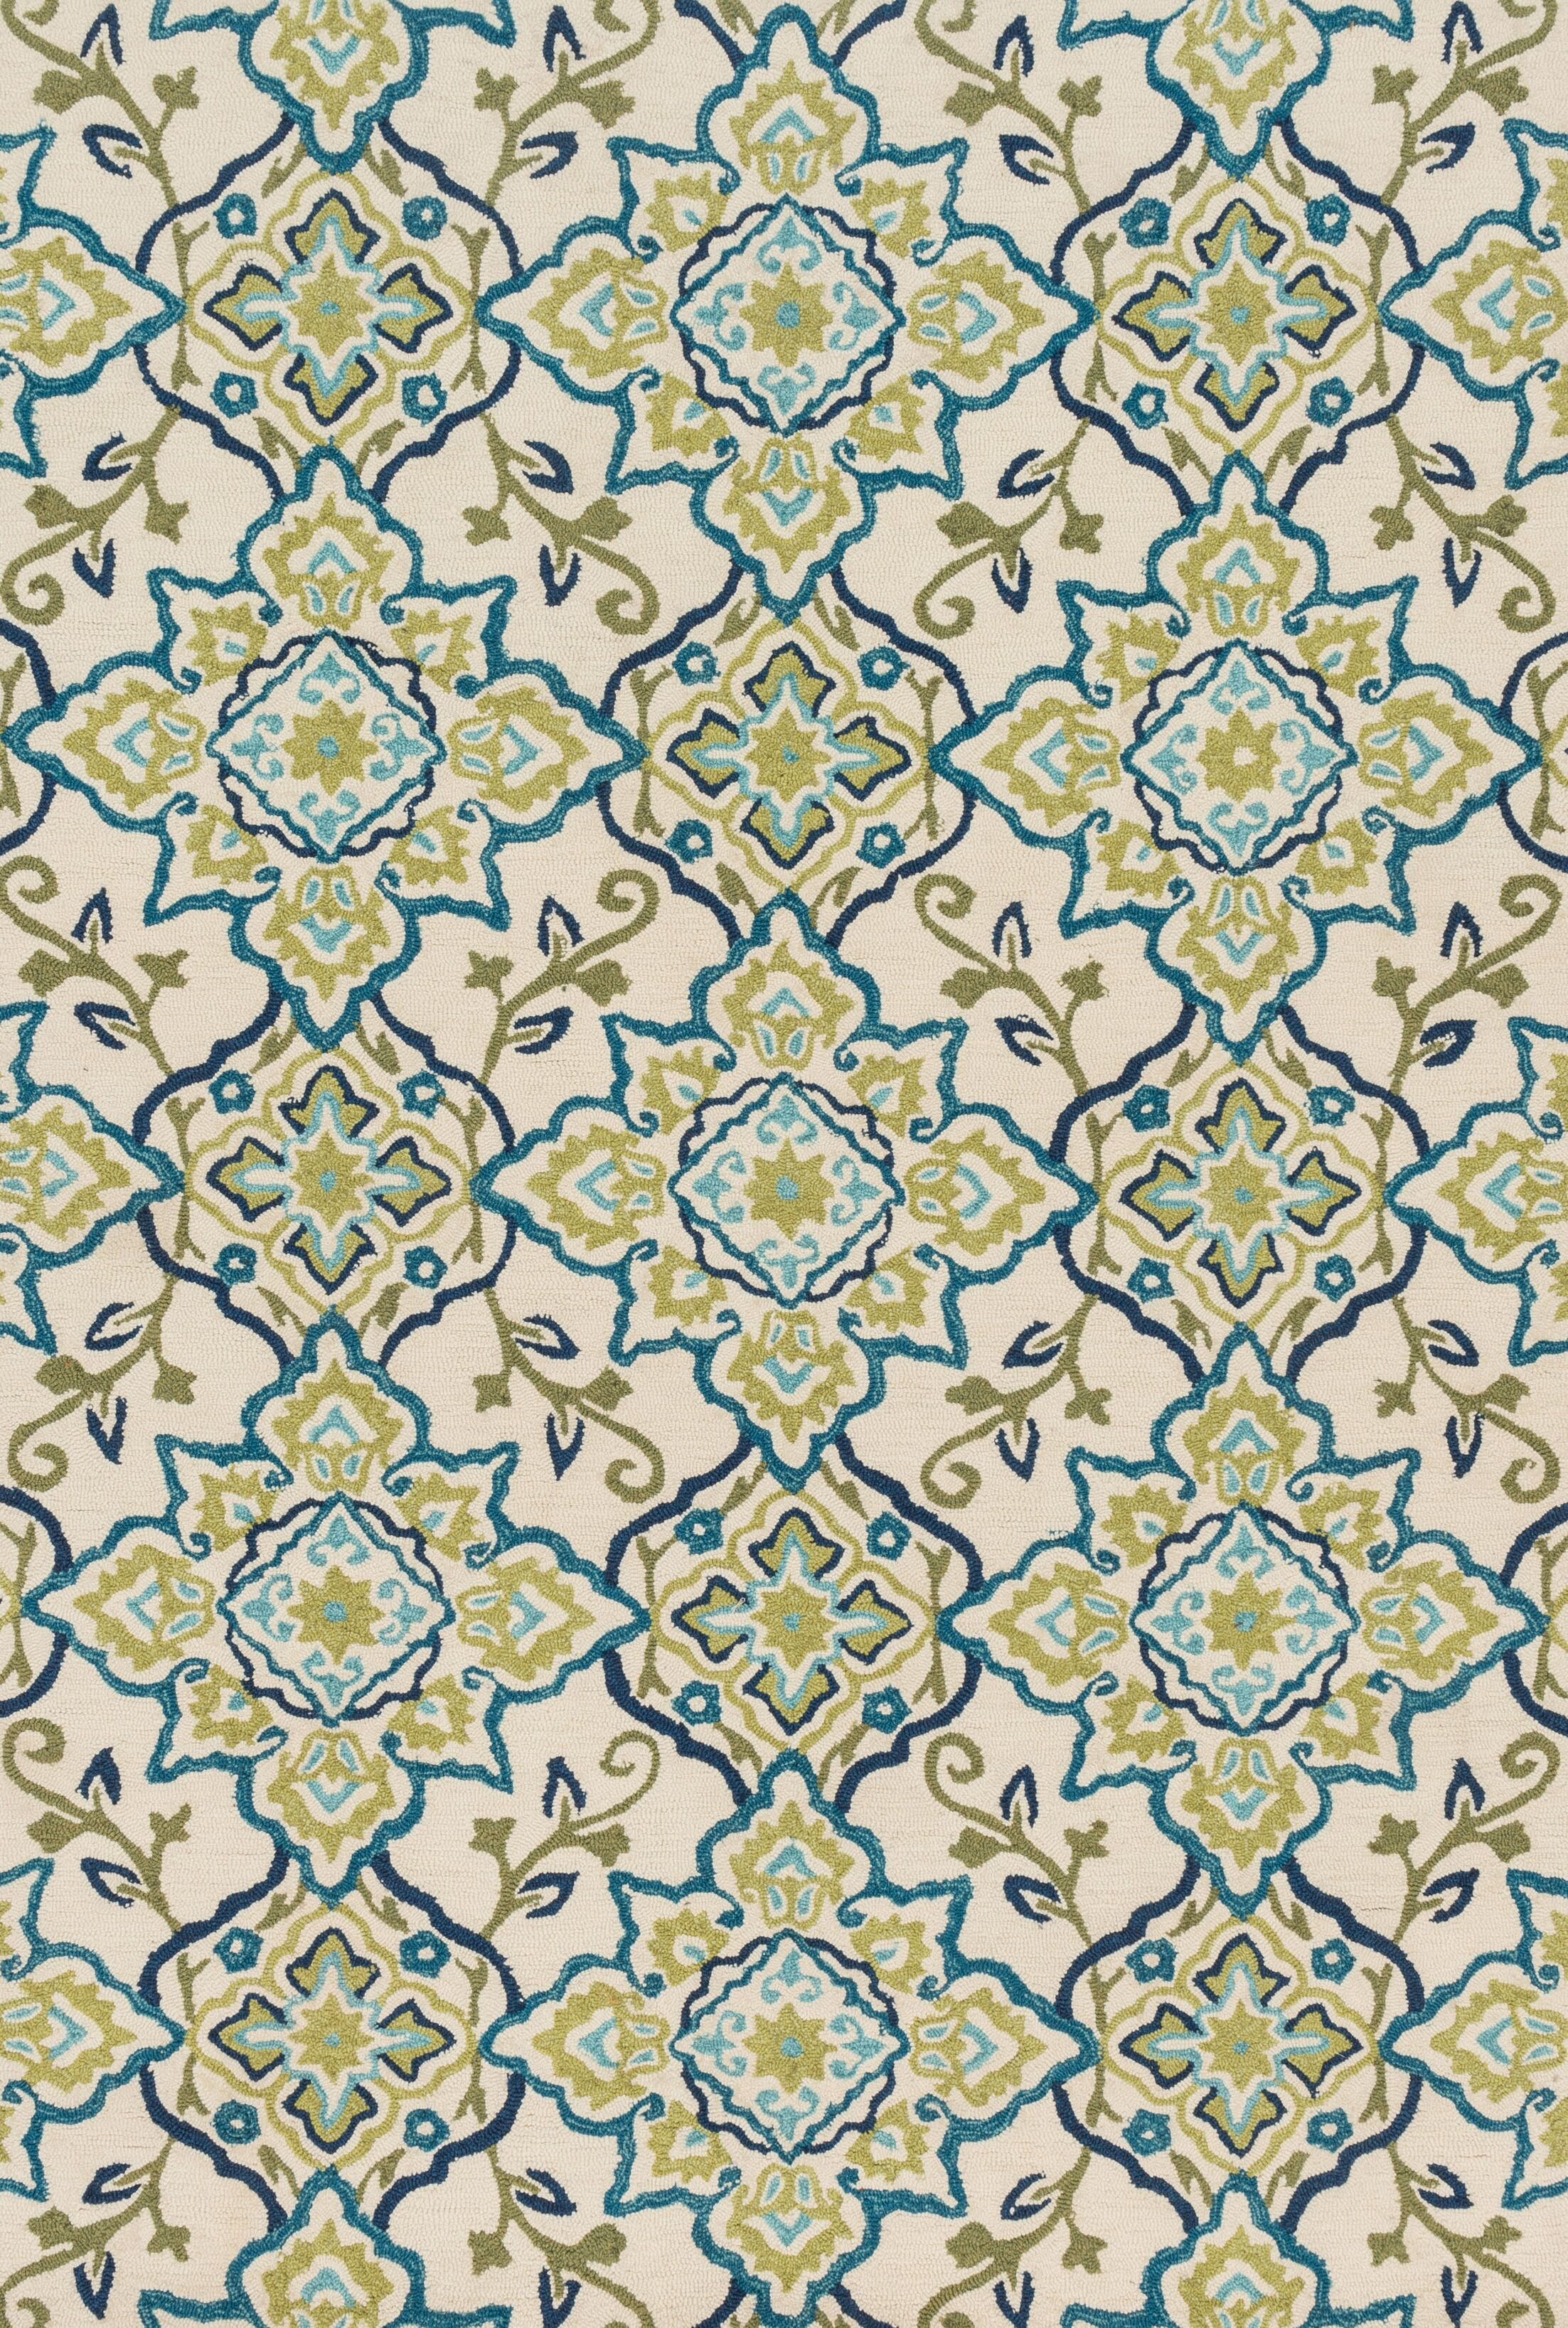 Kips Bay Hand-Hooked Green/Blue Area Rug Rug Size: Rectangle 5' x 7'6